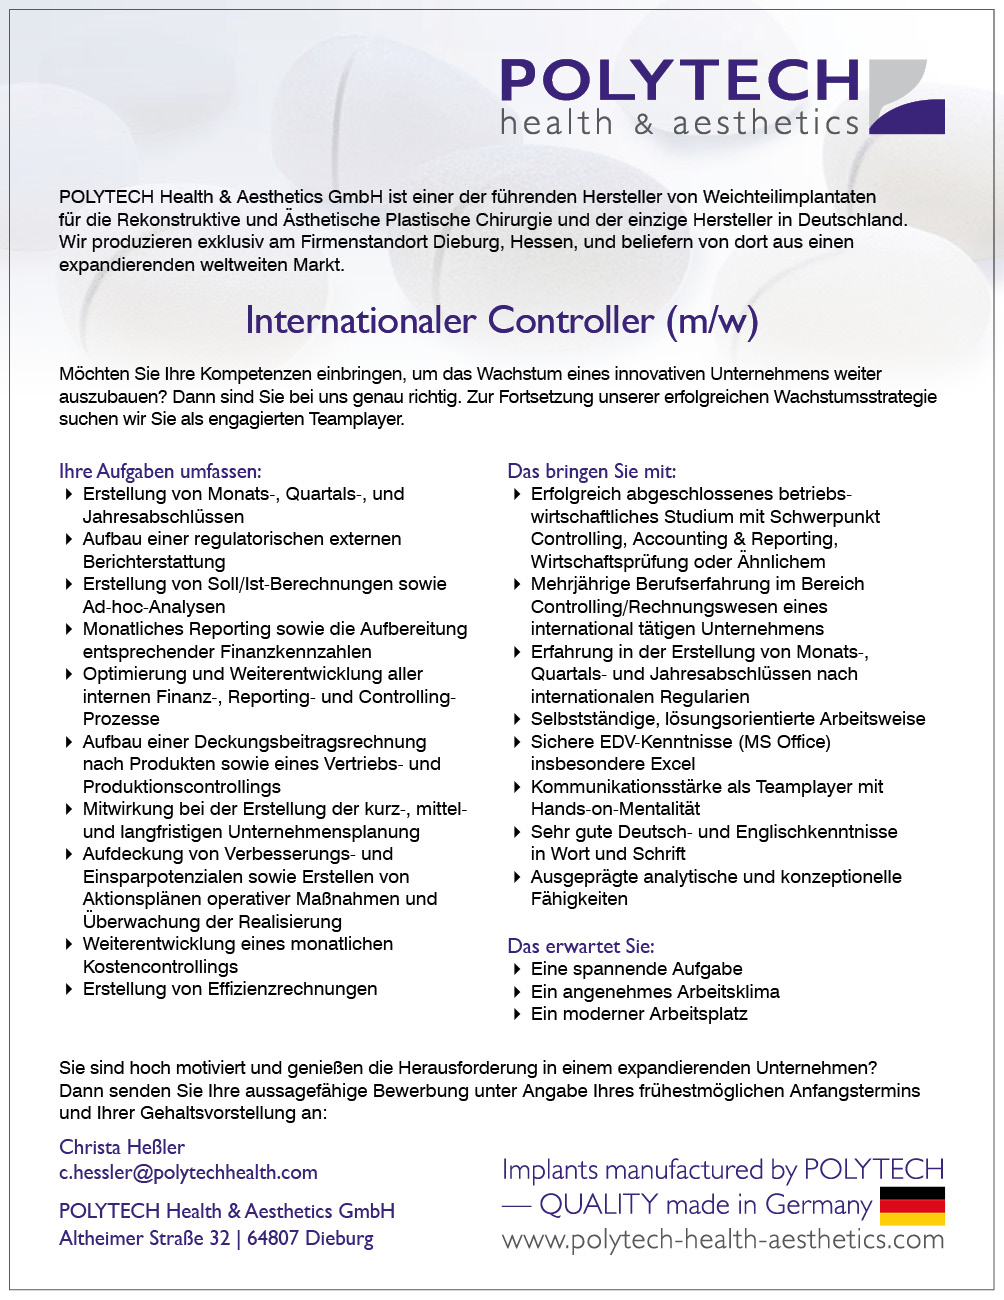 Stelle InternatController JUL-2016